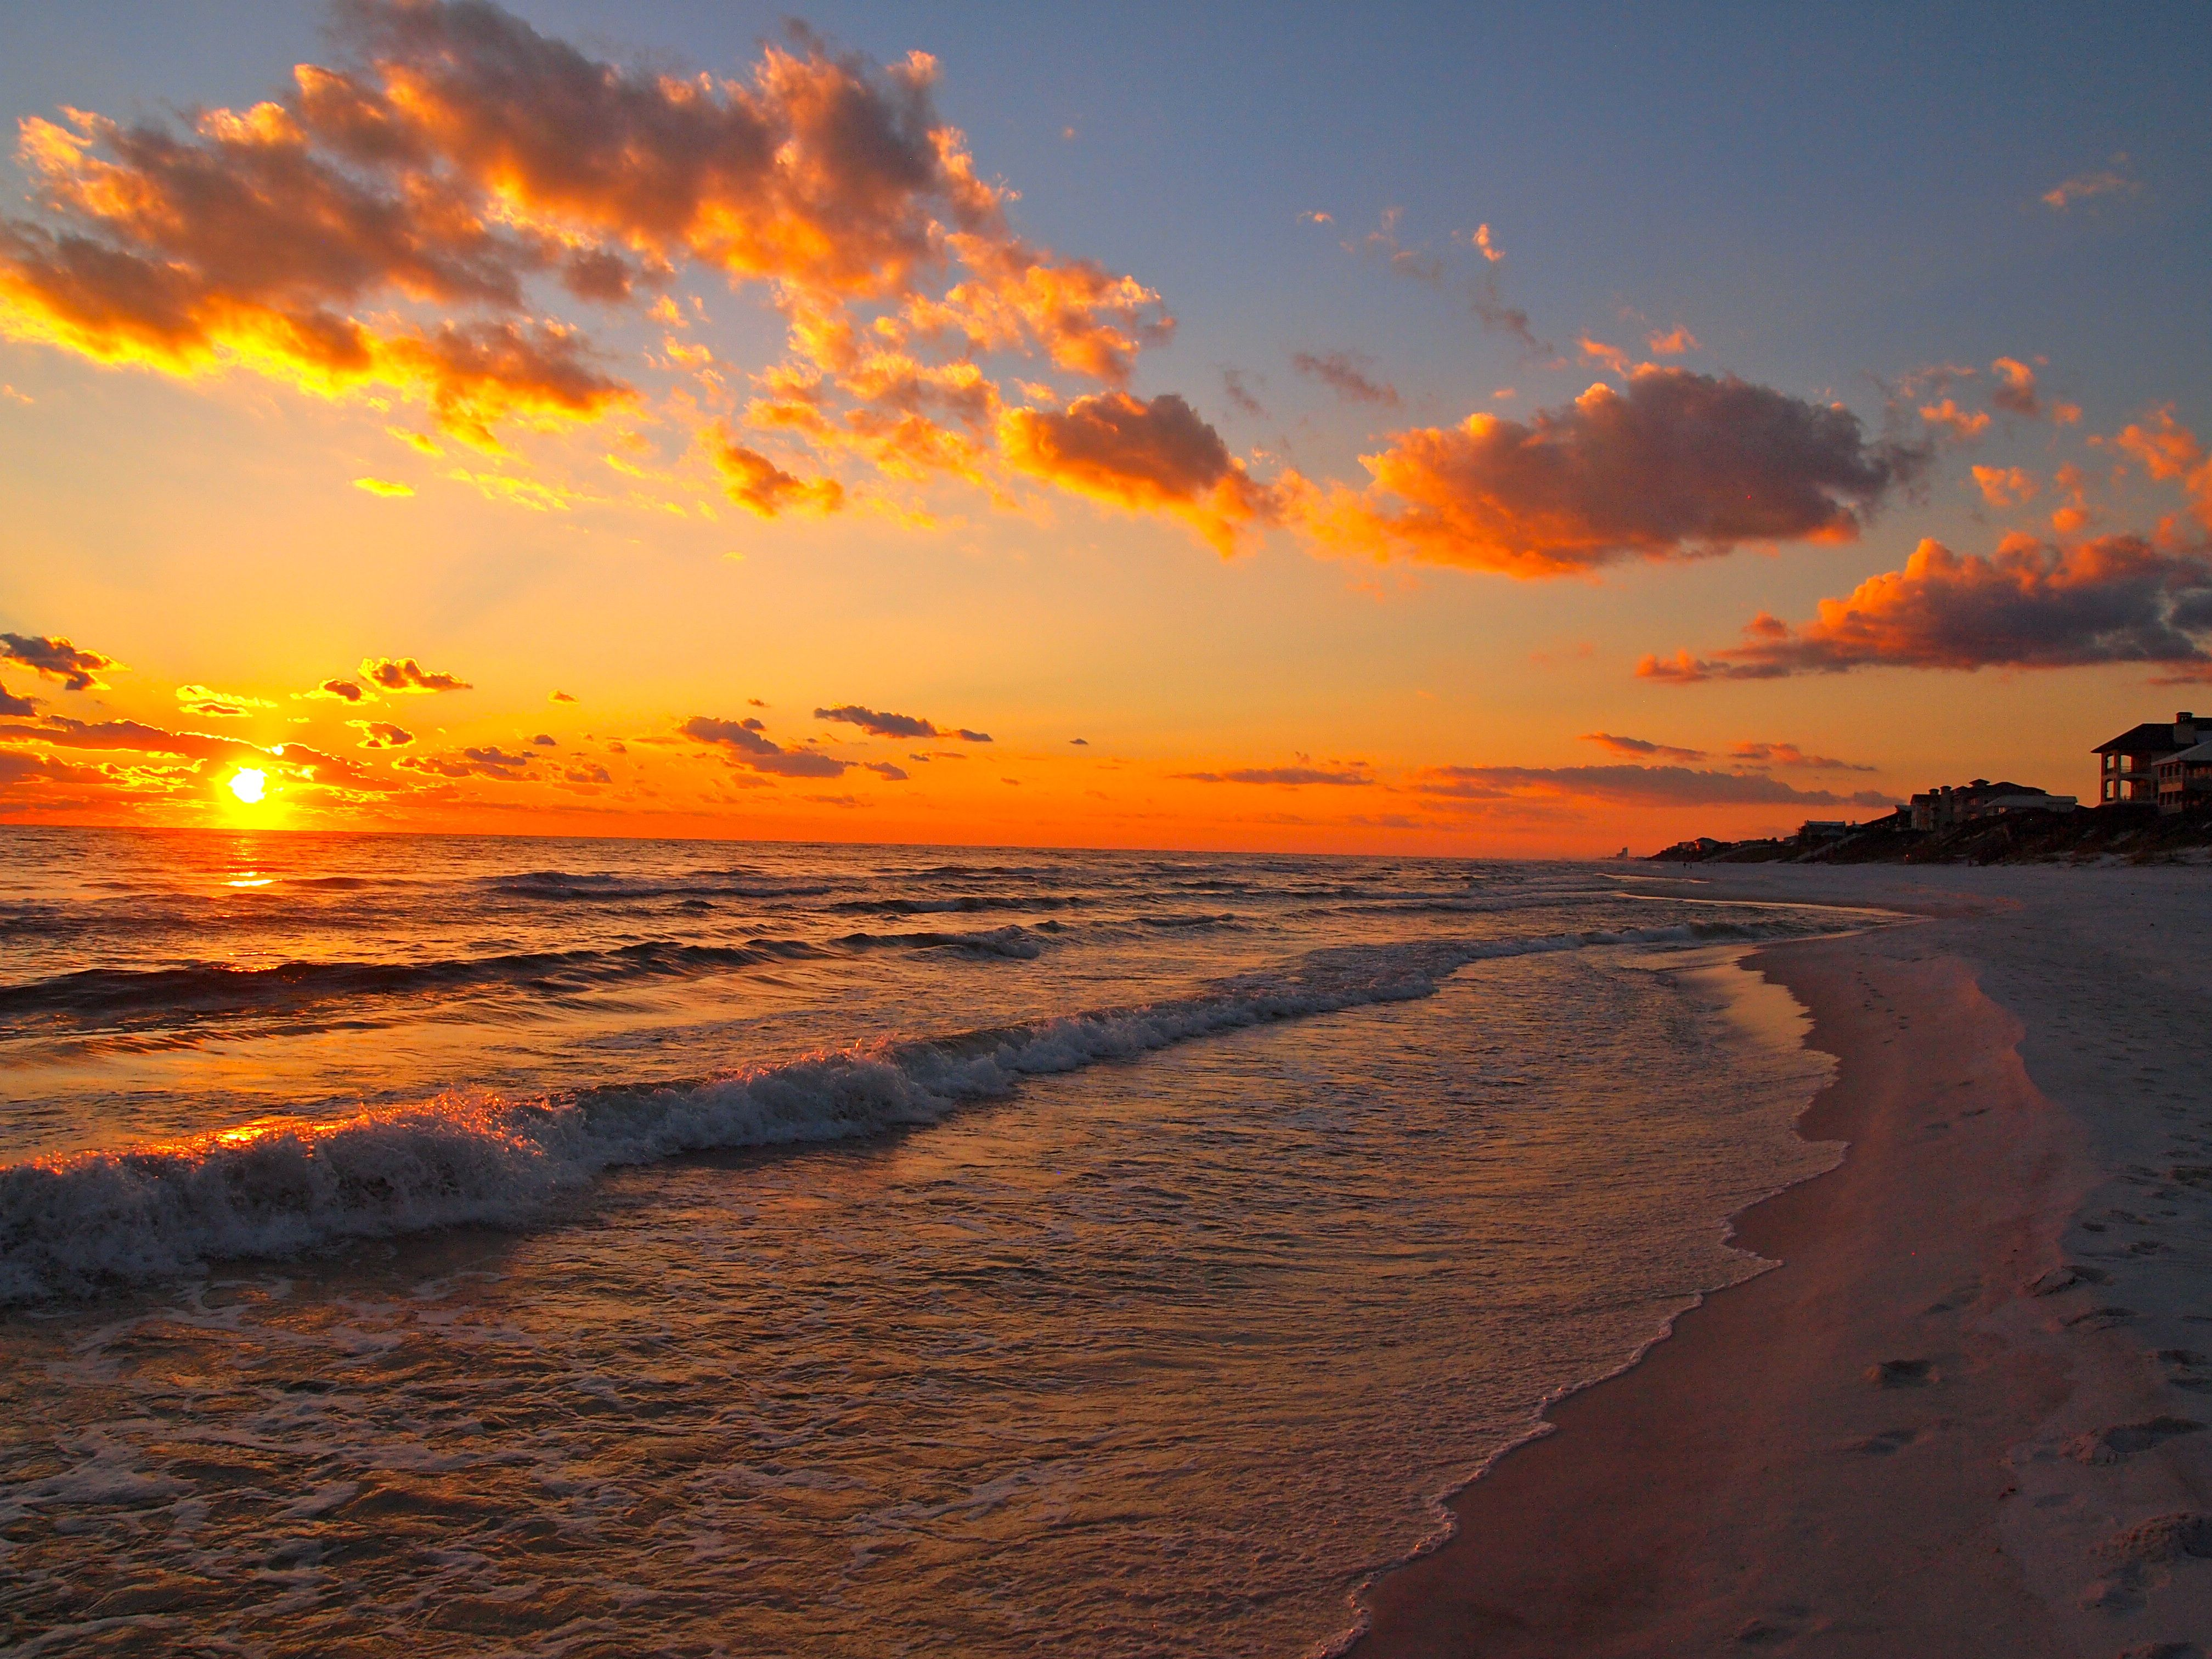 Florida Beaches Sunset Images 6 HD Wallpapers | amagico.com | Beaches in 2019 | Sunset wallpaper ...